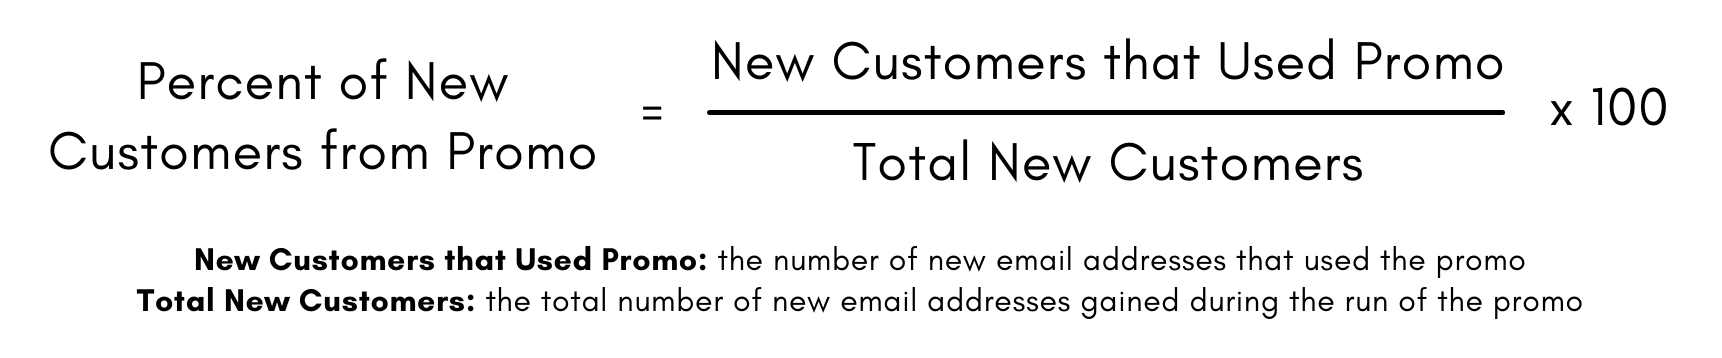 Formula for the Percent of New Customers from a Promotion: number of new email addresses the used the promo divided by the total number of new email addresses in the promo time period, times 100.